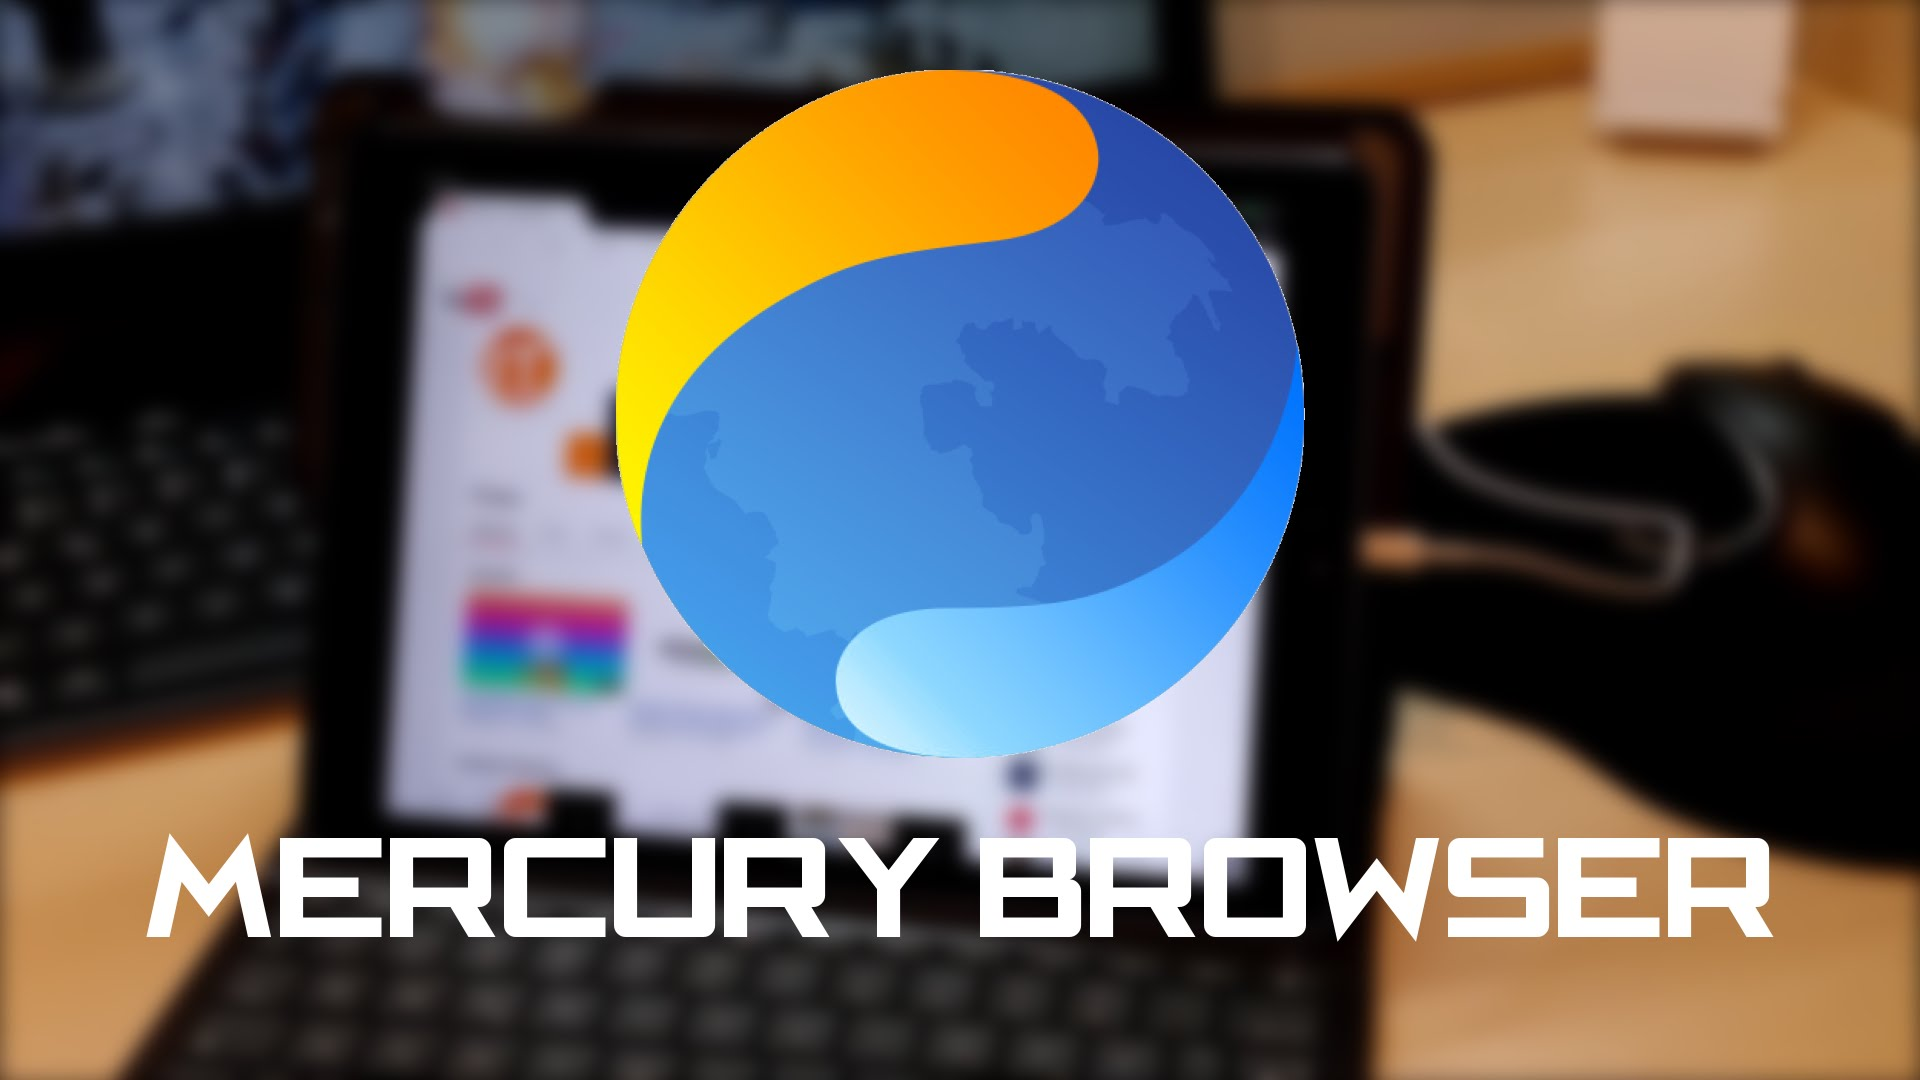 Mercury Browser – One of the Best Android Browsers That You Have Missed On